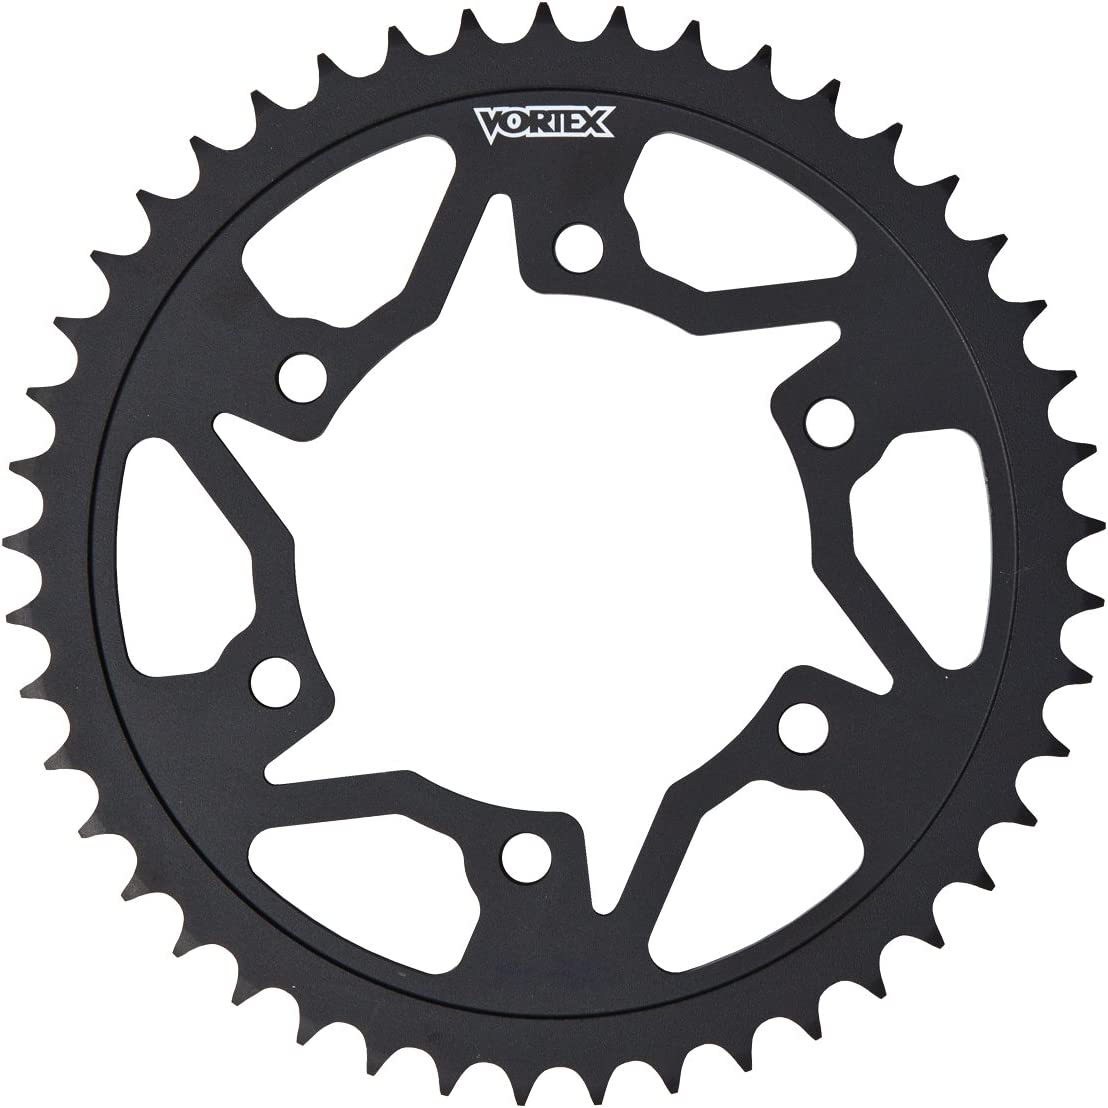 Vortex 405-49 Silver 49-Tooth Rear Sprocket